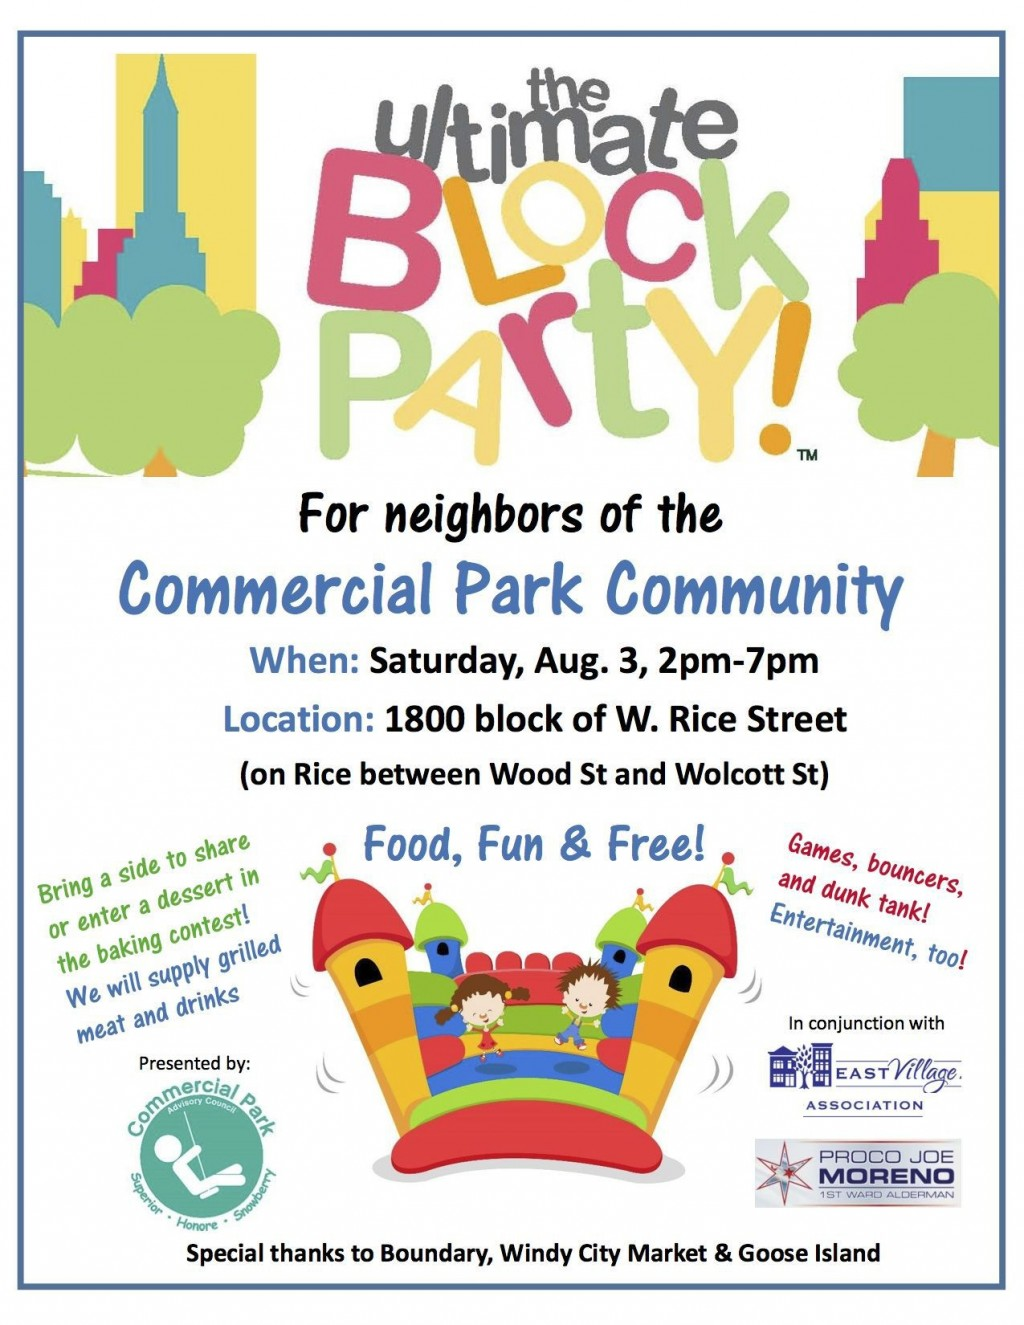 002 Stirring Block Party Flyer Template High Definition  TemplatesLarge